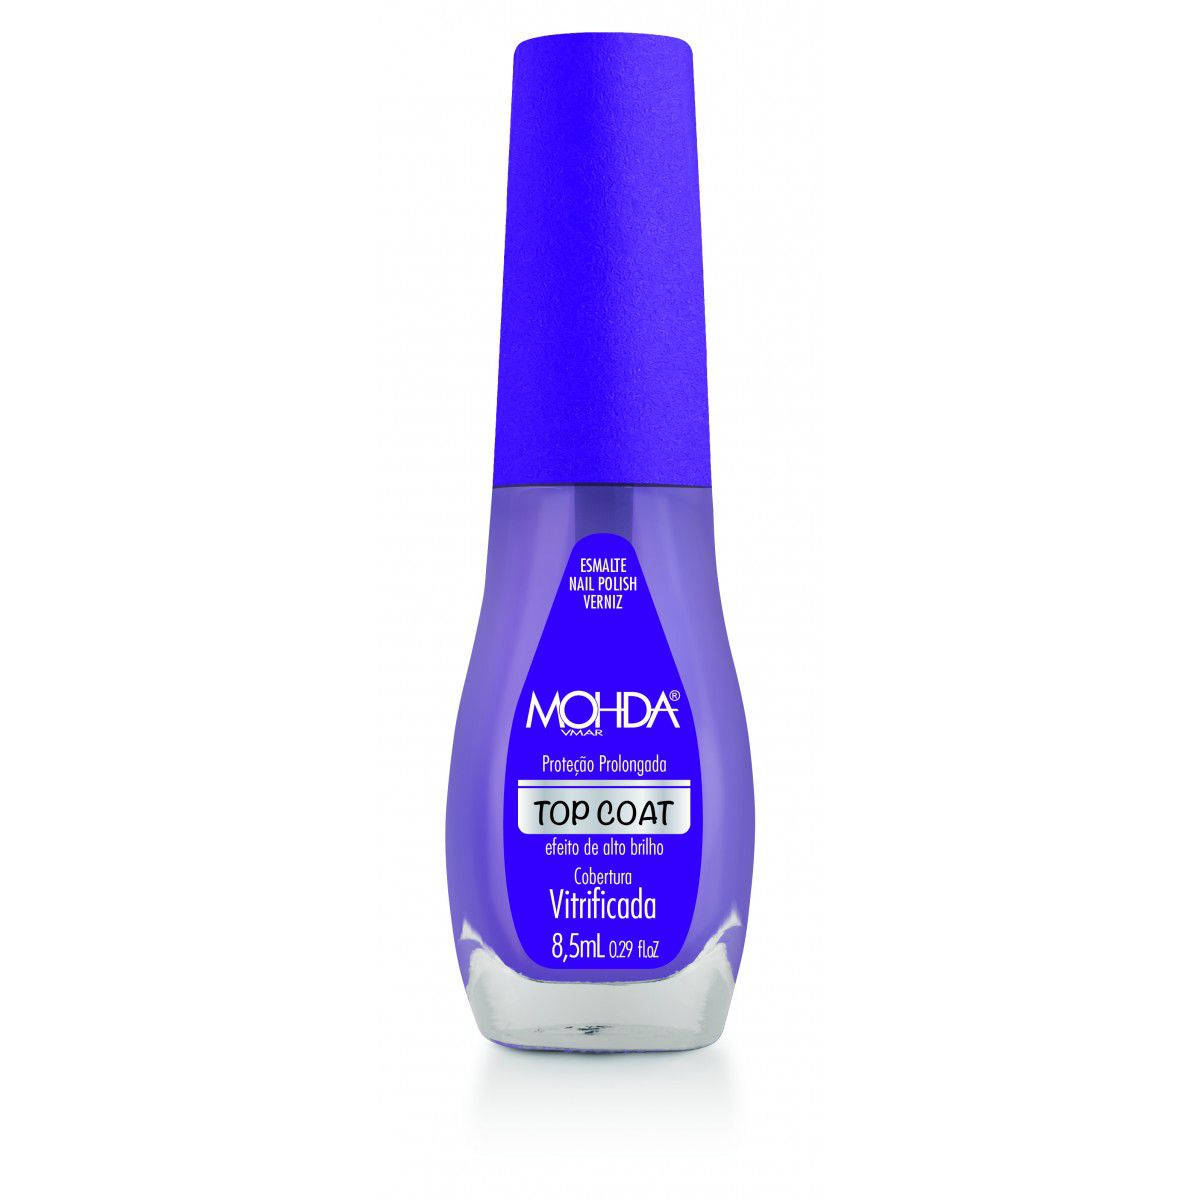 Esmalte Top Coat  - 8,5ml - Mohda